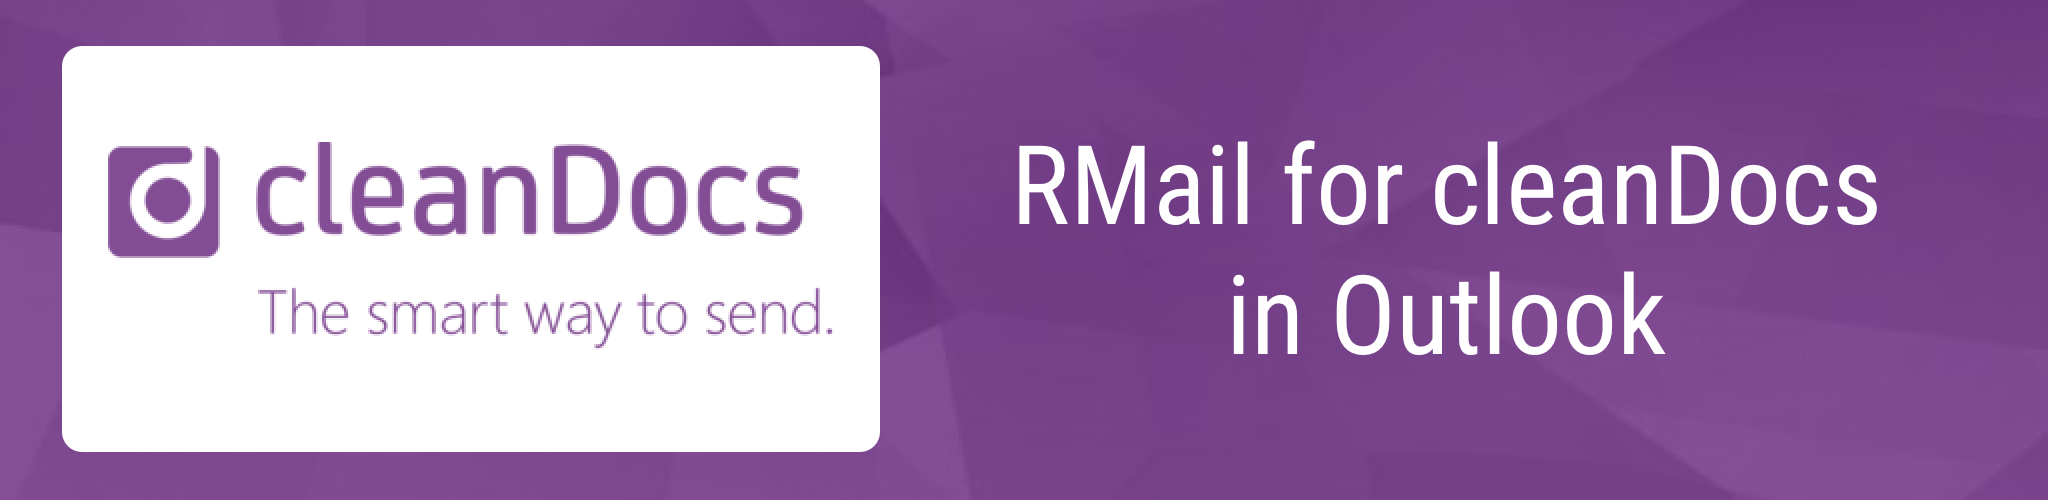 RMail for cleanDocs in Outlook